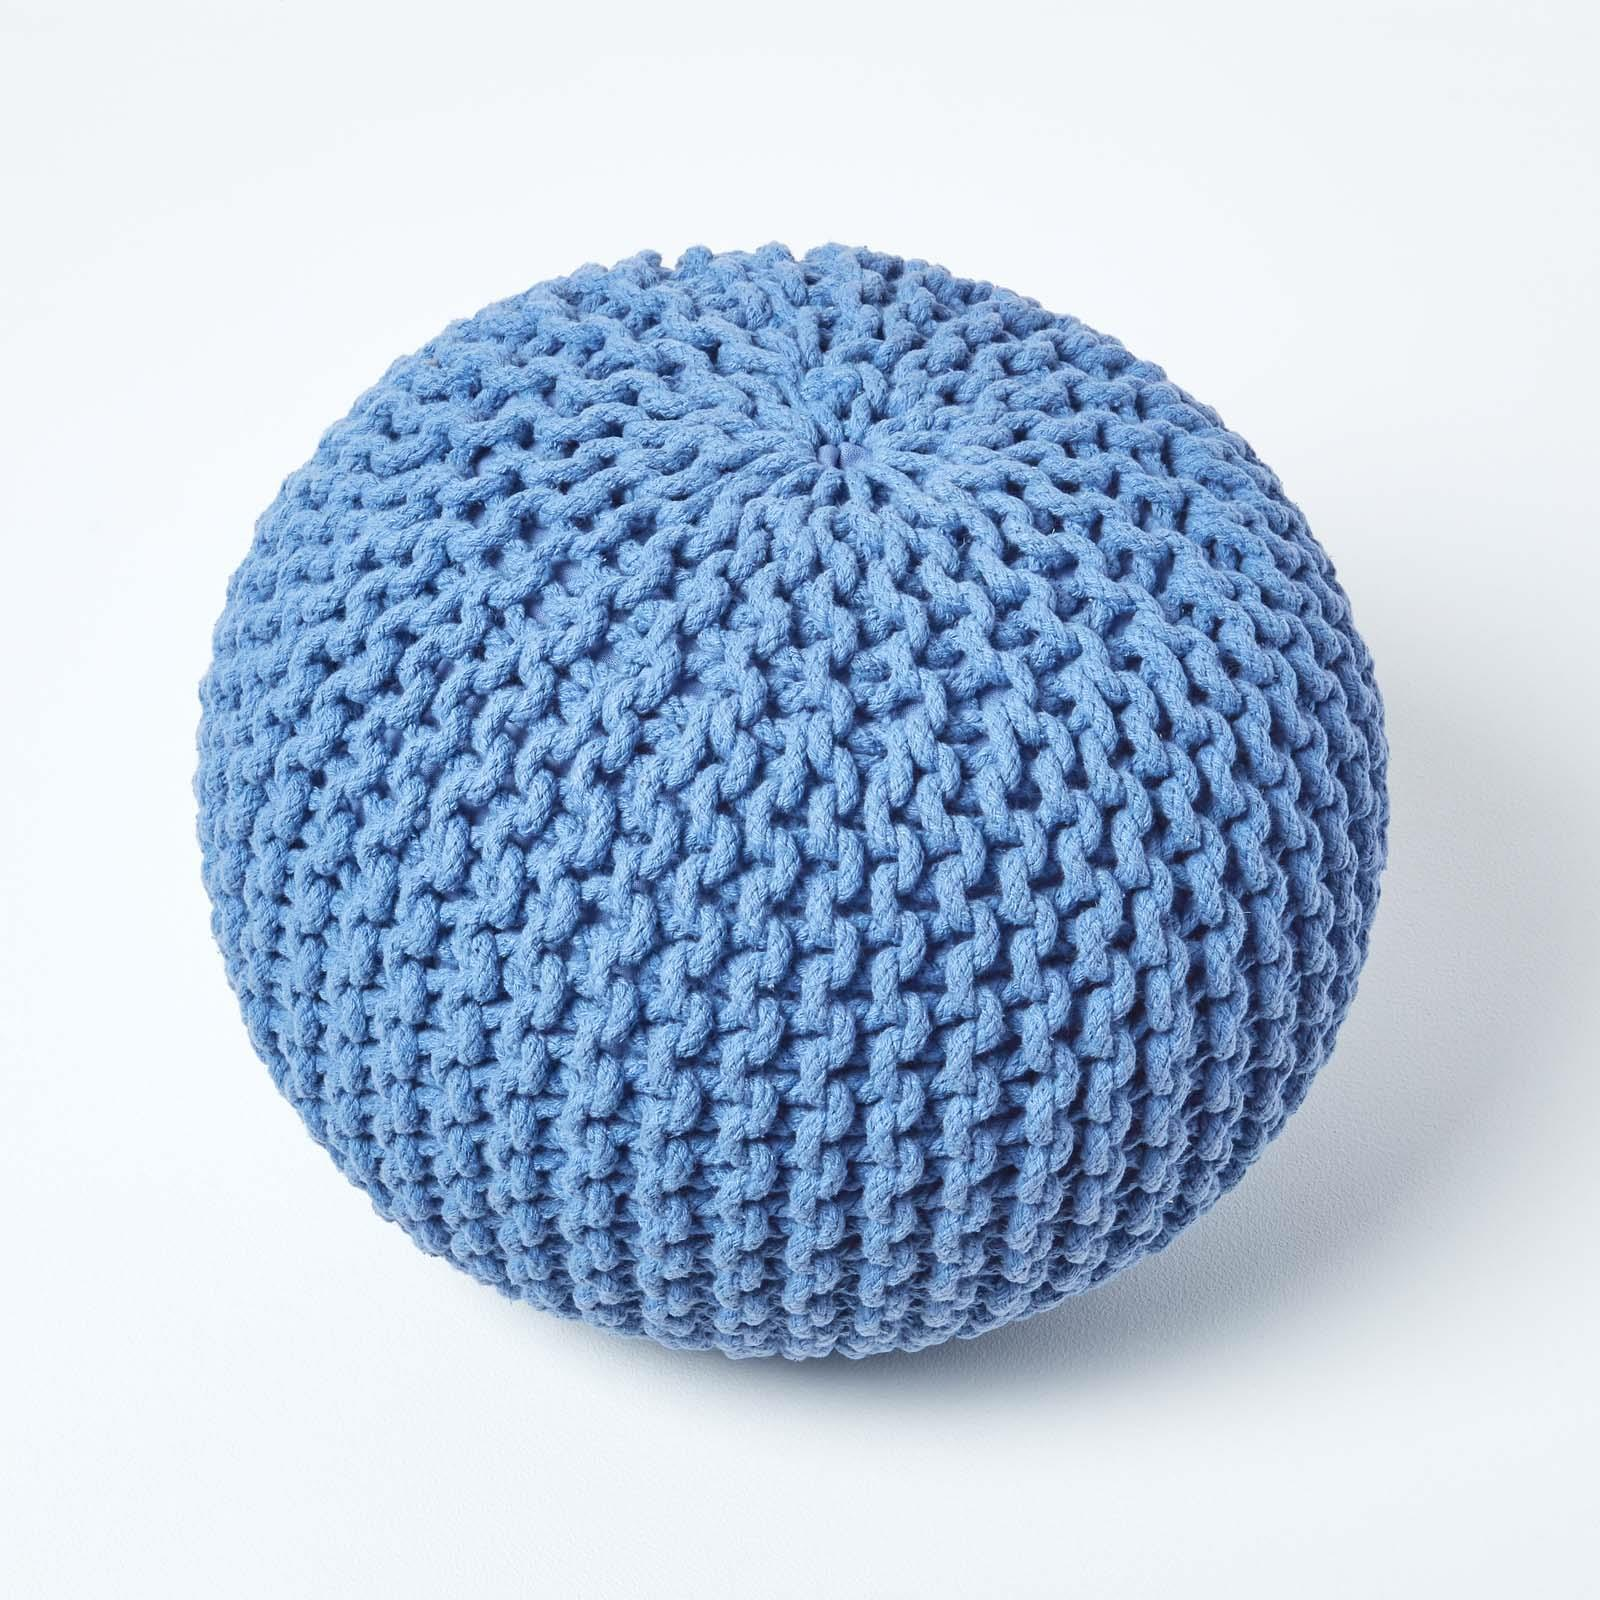 Hand-Knitted-100-Cotton-Pouffes-Round-Sphere-Or-Cube-Square-Chunky-Footstools thumbnail 18